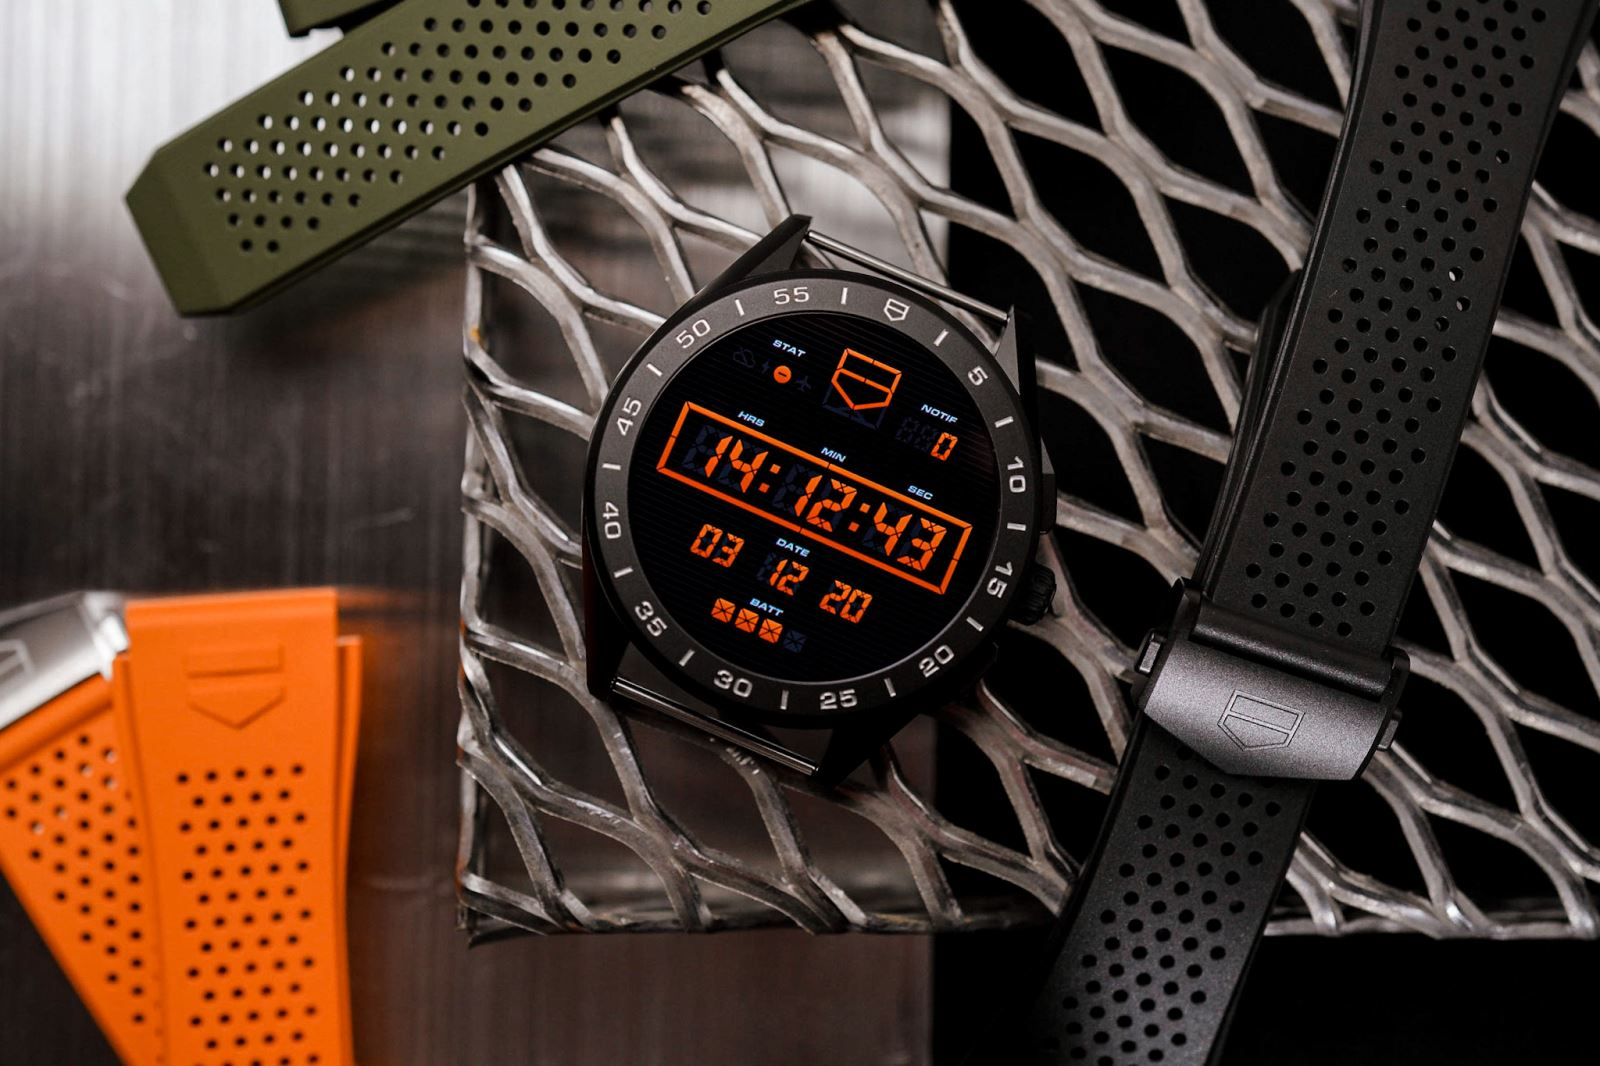 TAG HEUER CONNECTED SMARTWATCH 2020 vỏ titan 2 lớp